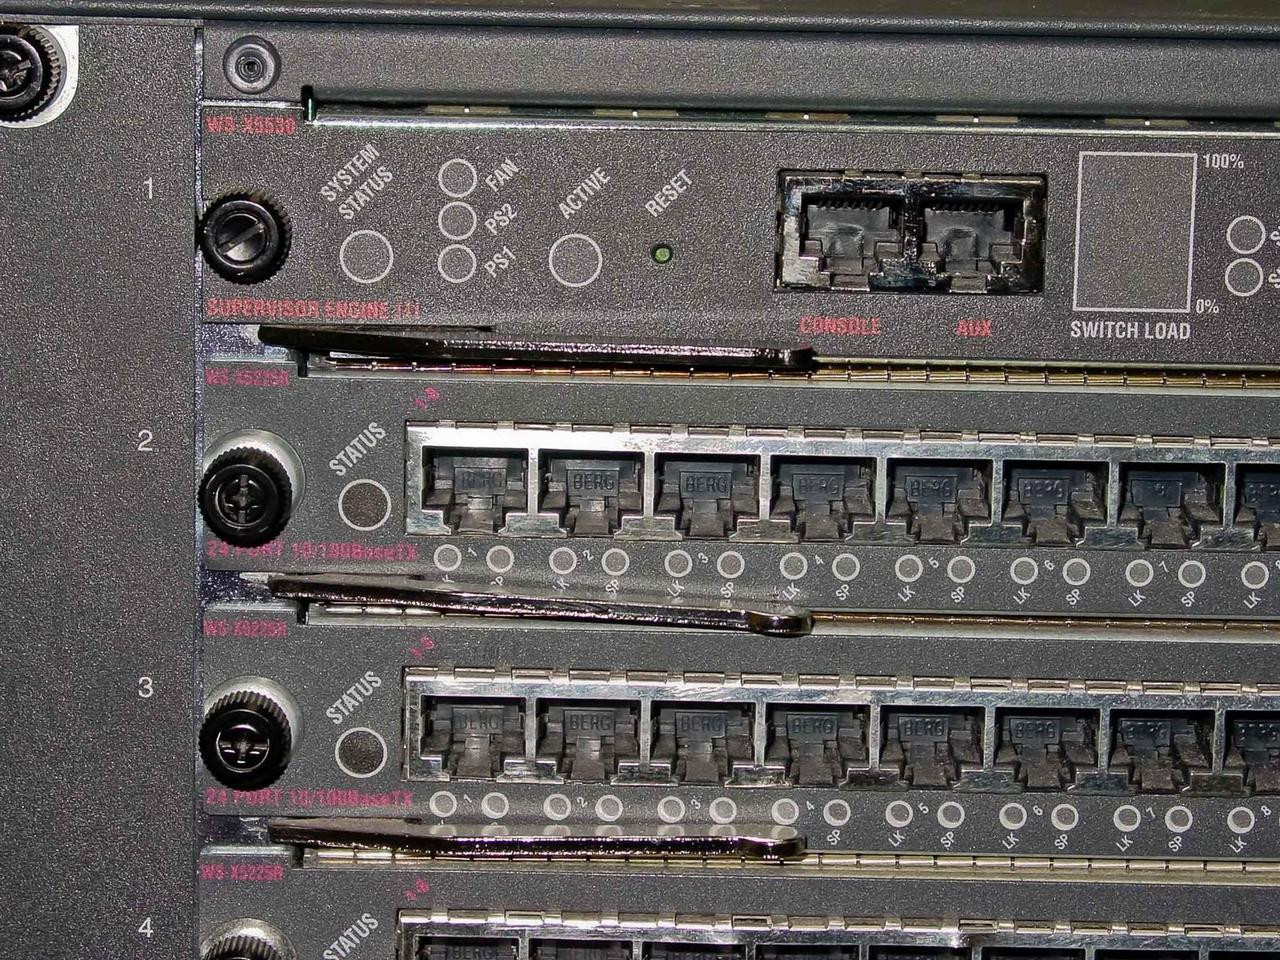 Cisco Catalyst 5500 13 Slot Chassis Loaded Network Cards